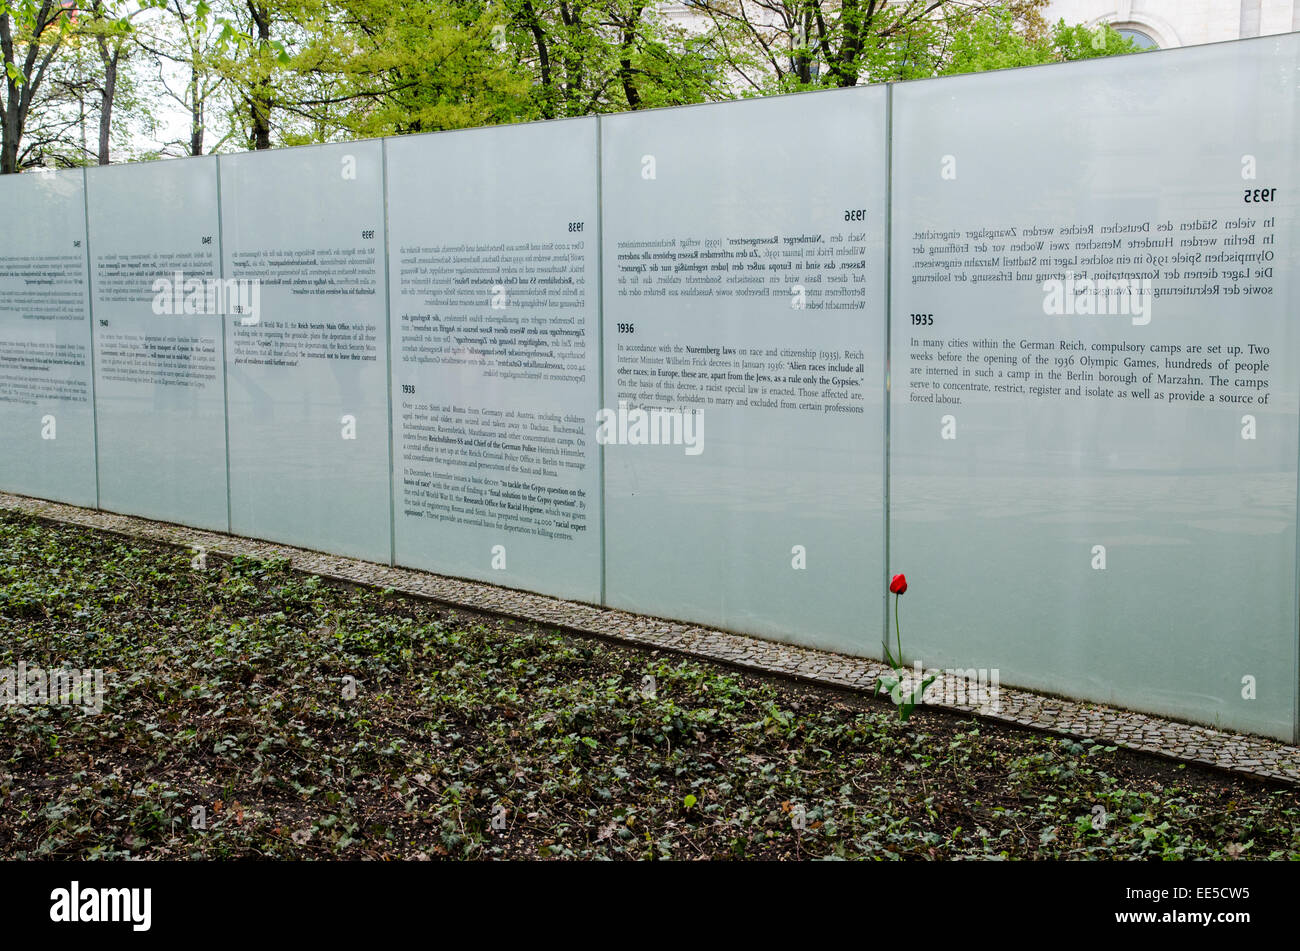 Memorial to the Sinti and Roma murdered by the Nazis, Tiergarten Park, Berlin, Germany - Stock Image